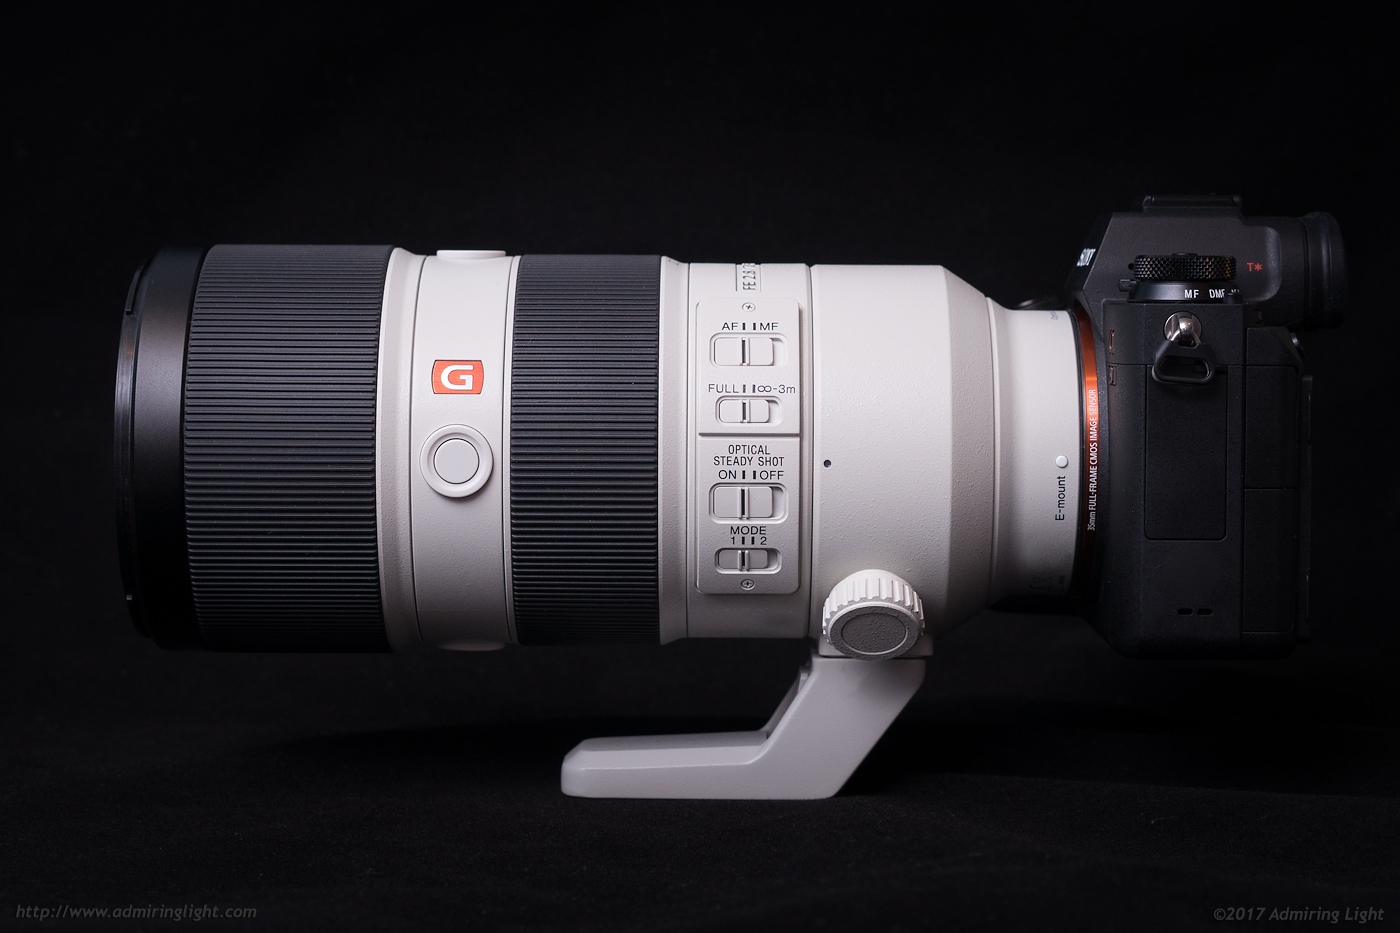 The side controls are plentiful on the FE 70-200mm f/2.8 GM